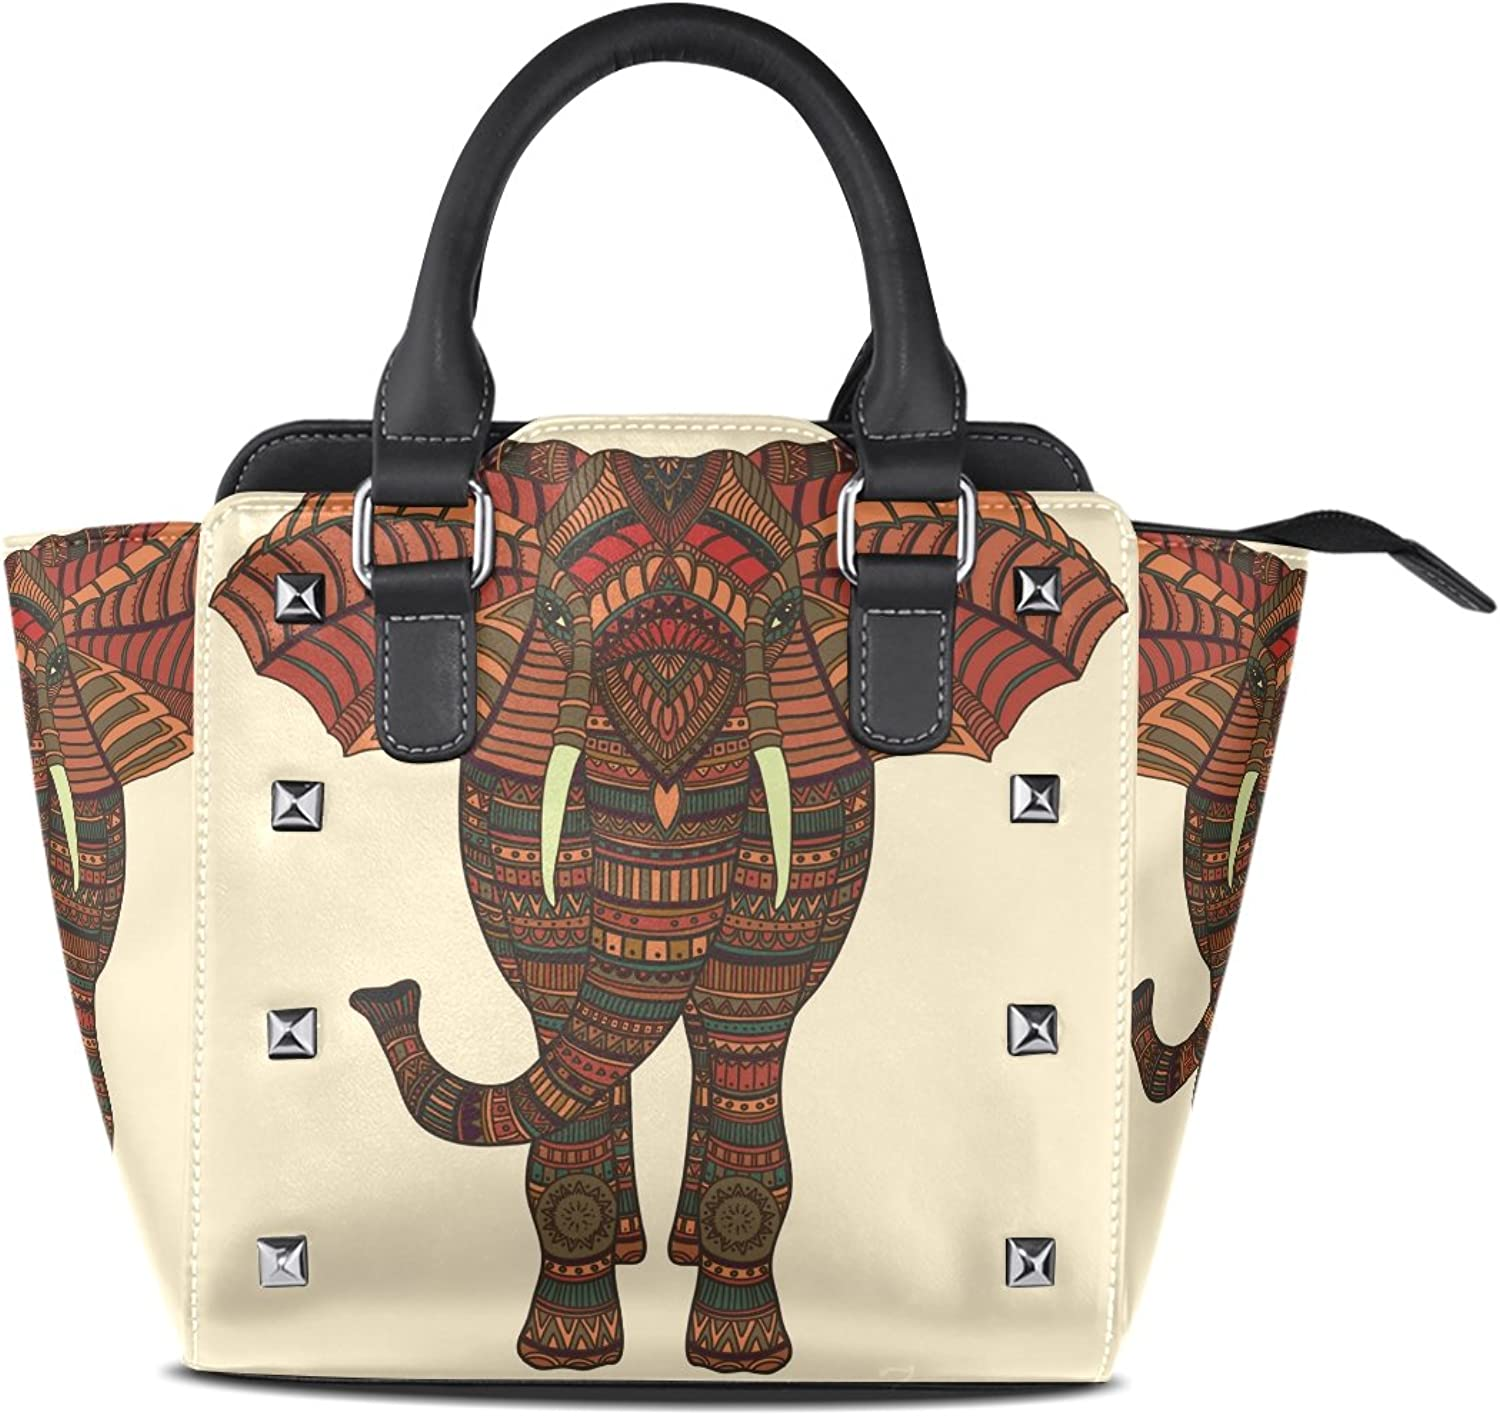 Sunlome Hand Drawn Tribal Elephant Print Handbags Women's PU Leather Top-Handle Shoulder Bags